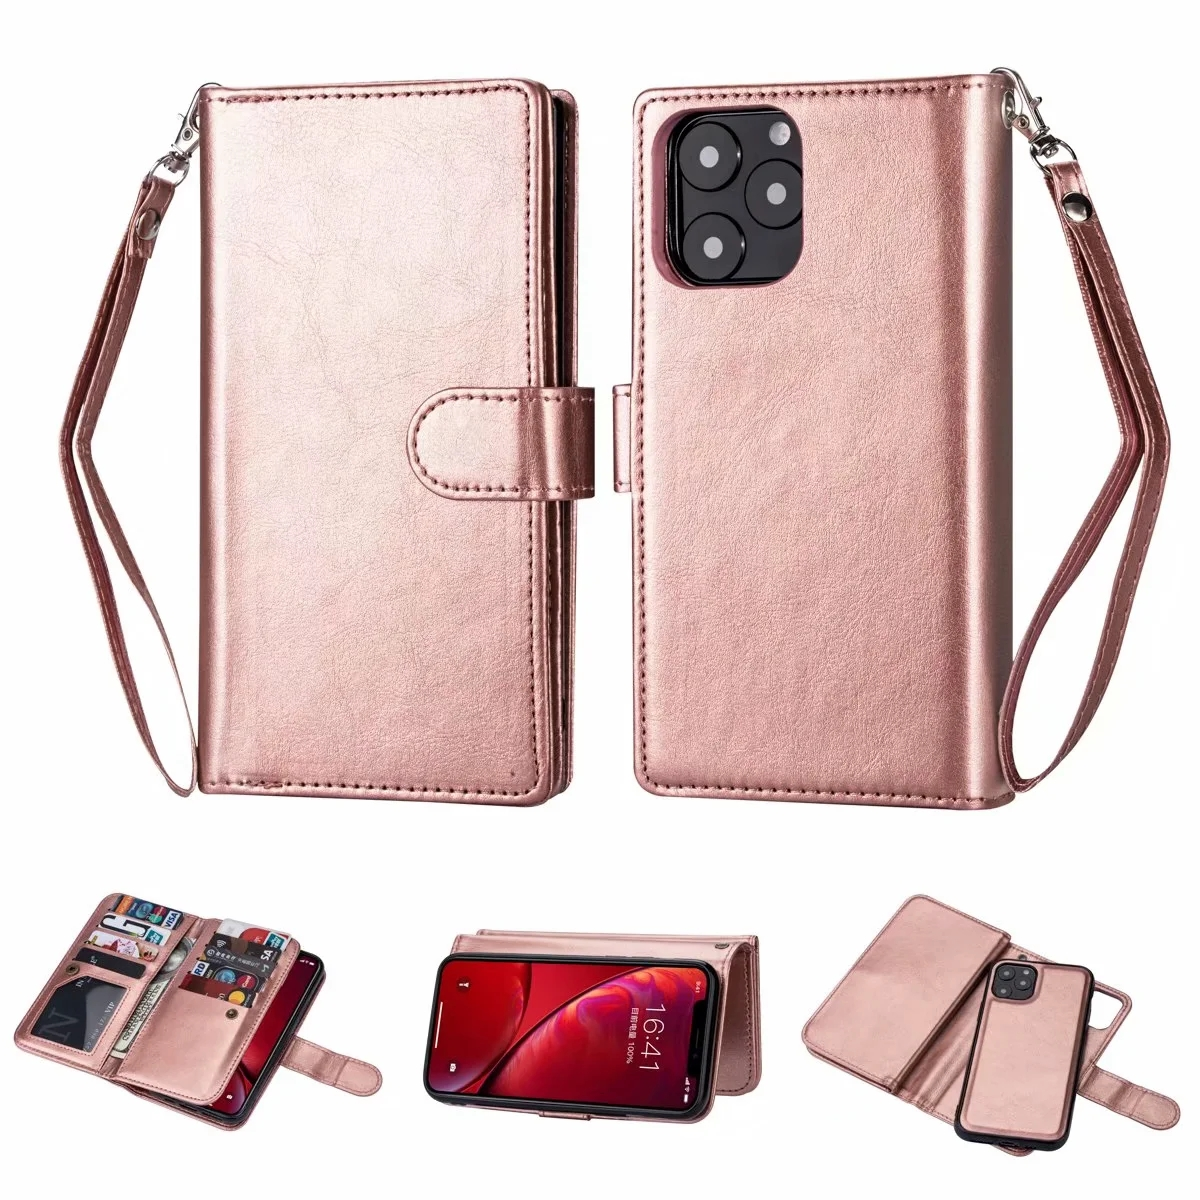 Nine card two in one Leather Wallet Case for iPhone 12 11 Pro Max 12Mini X XS Max XR 8 7 6 6S 5 Plus  Cover Case